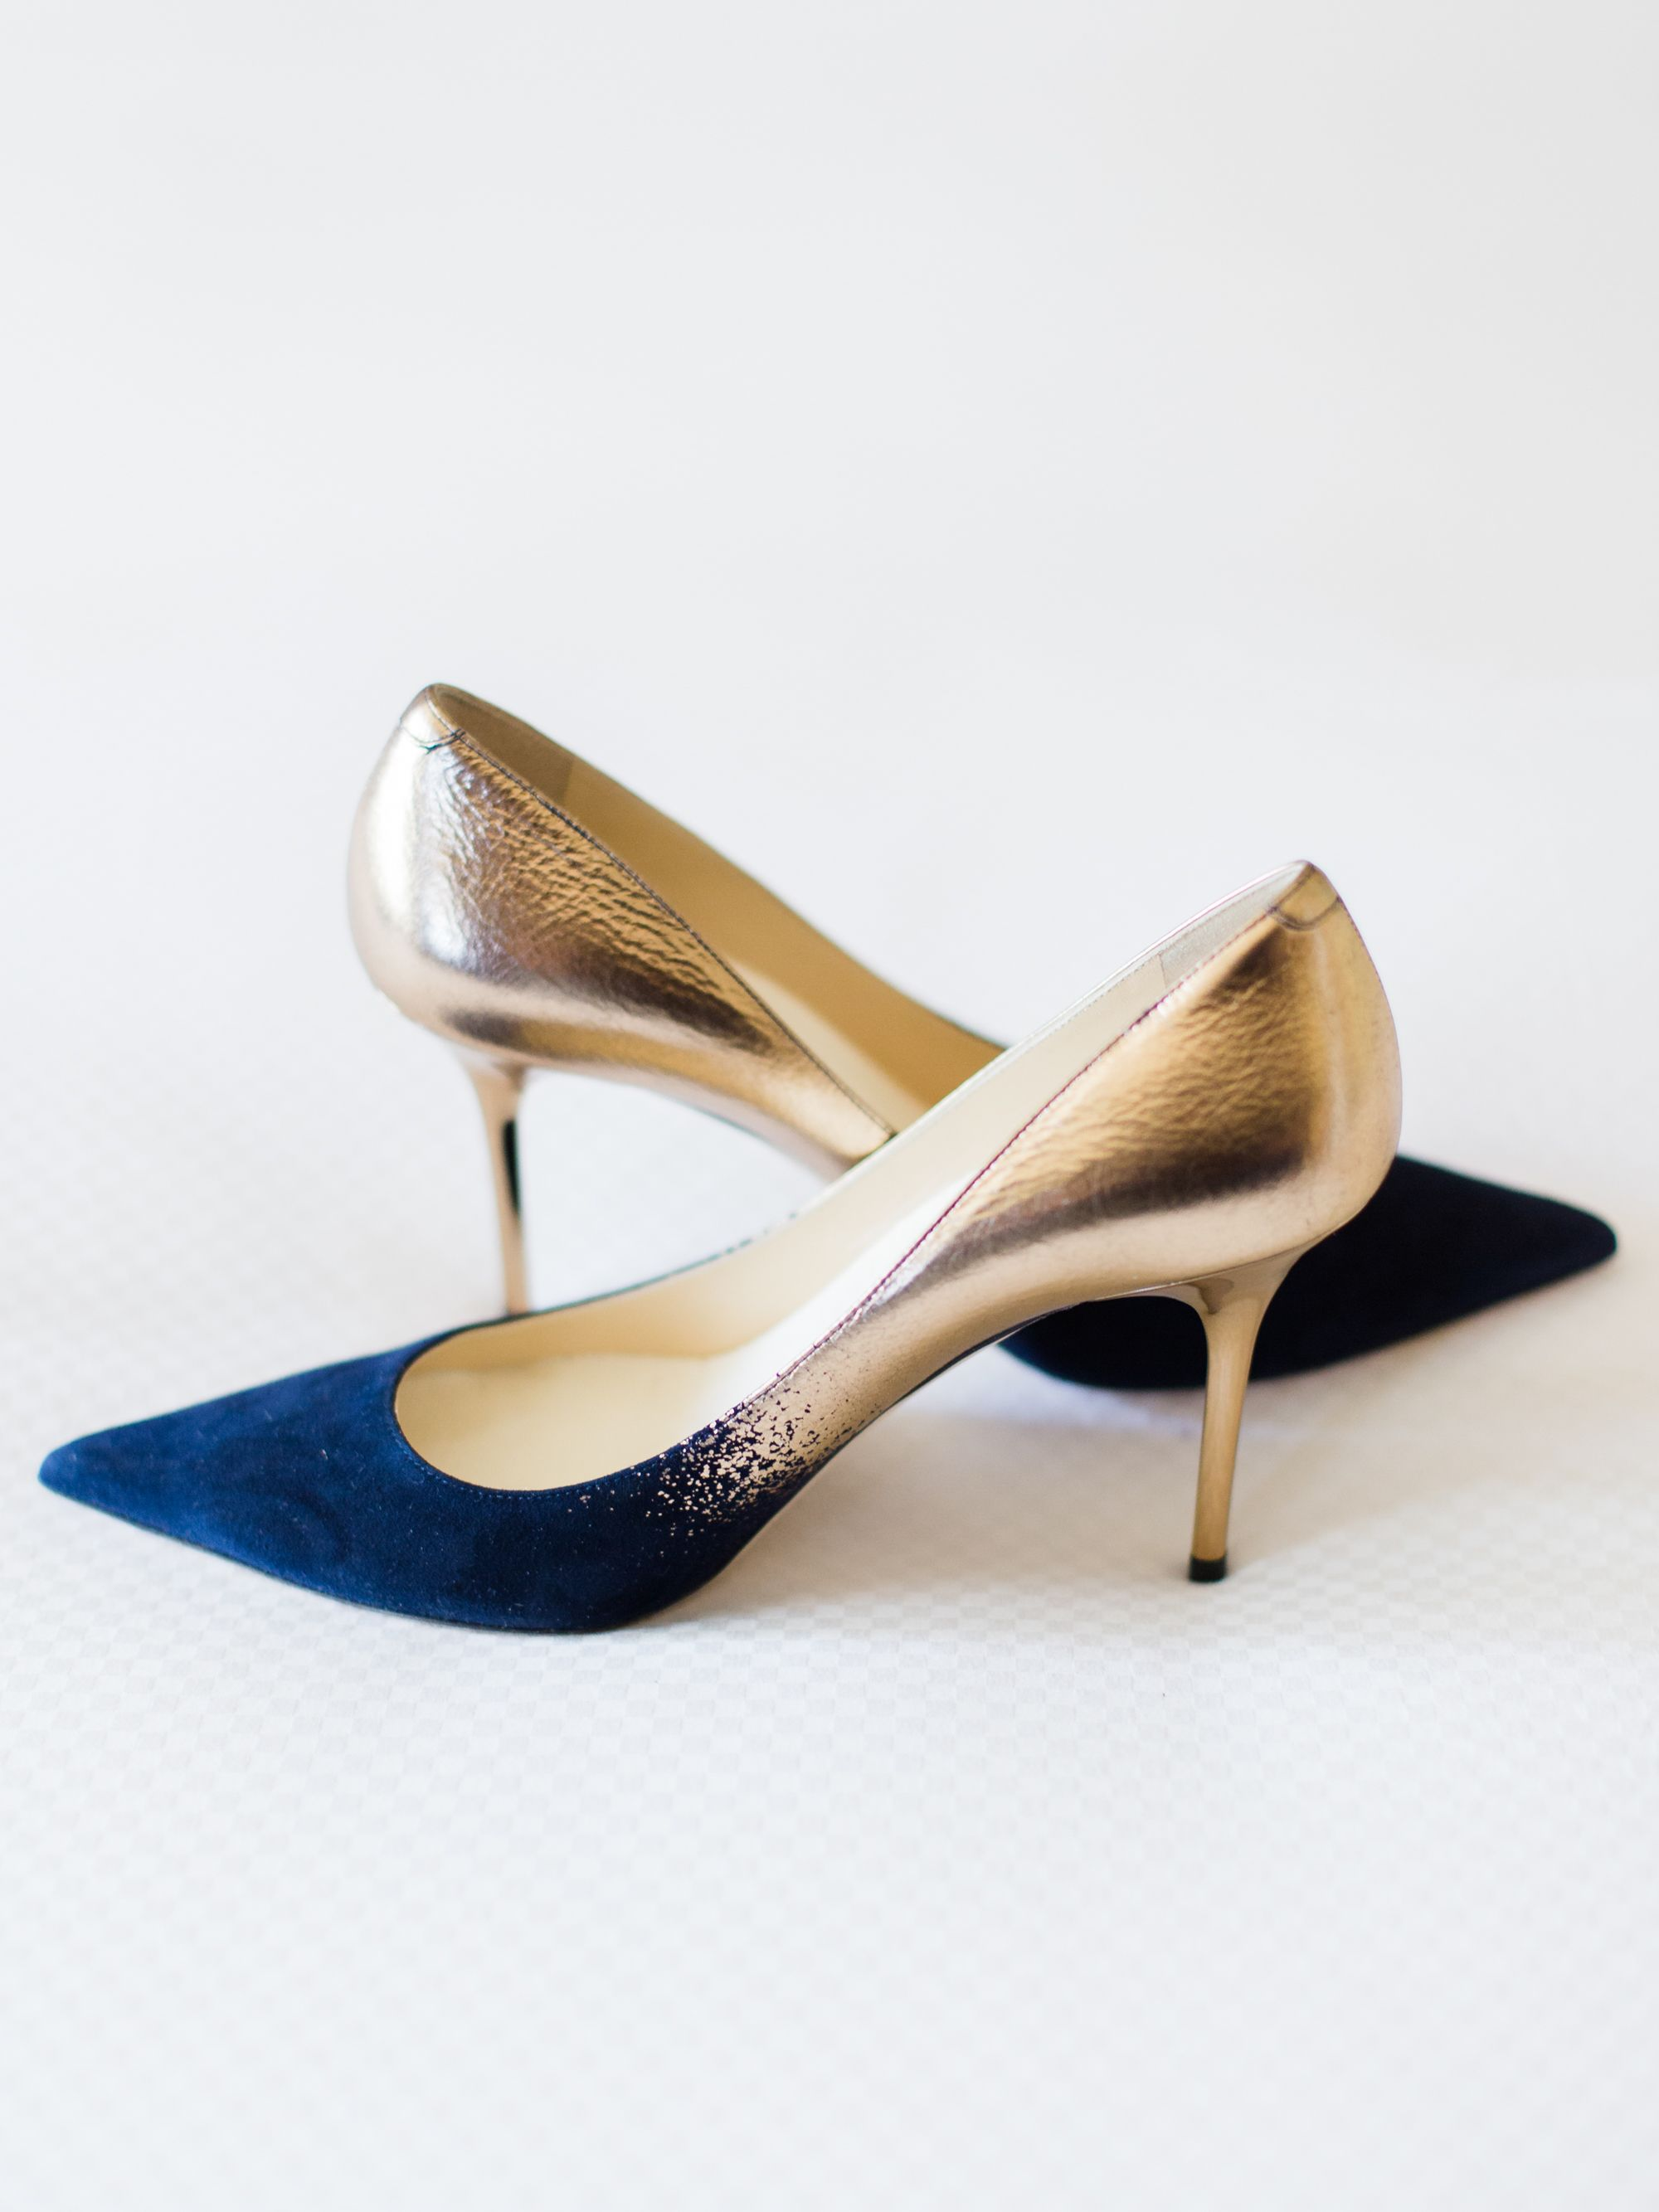 17e49395a2d Gold and Navy Jimmy Choo Heels